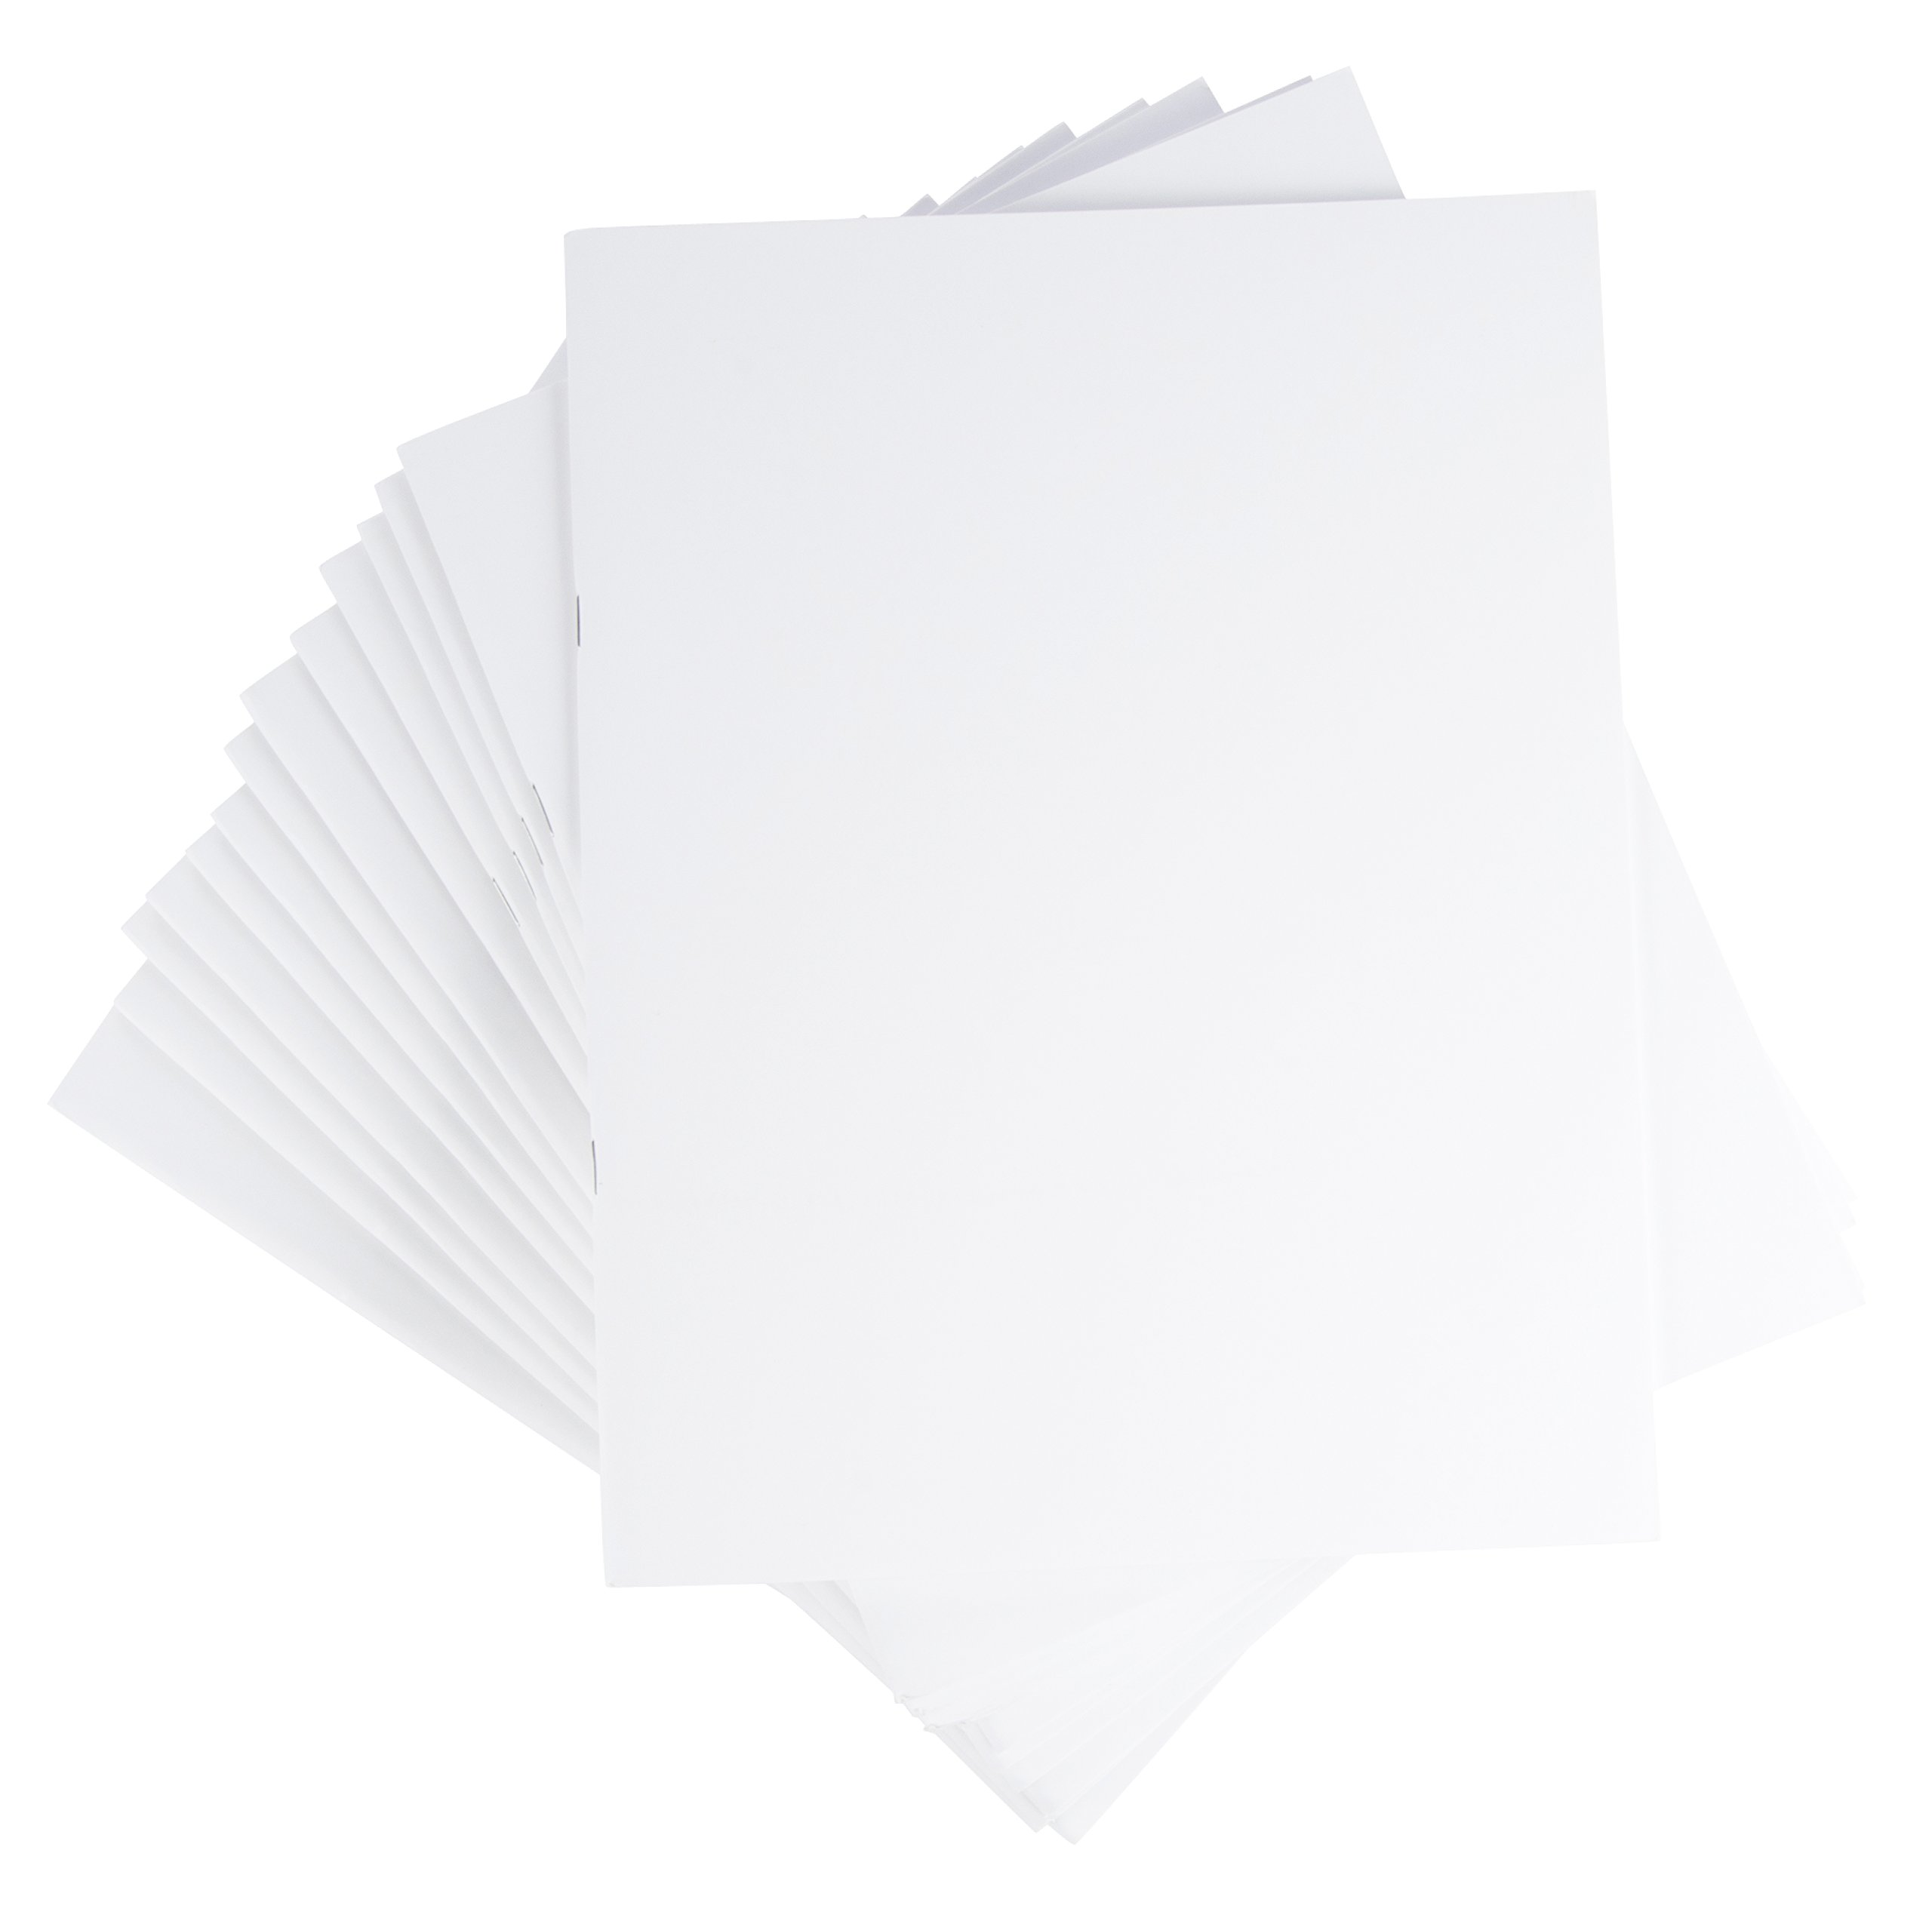 Blank Notebook - 24-Pack Unlined Books, Unruled Plain Travel Journals for Home, Office, School, White, 8.5 x 11 Inches, Letter Sized, 24 Sheets Each